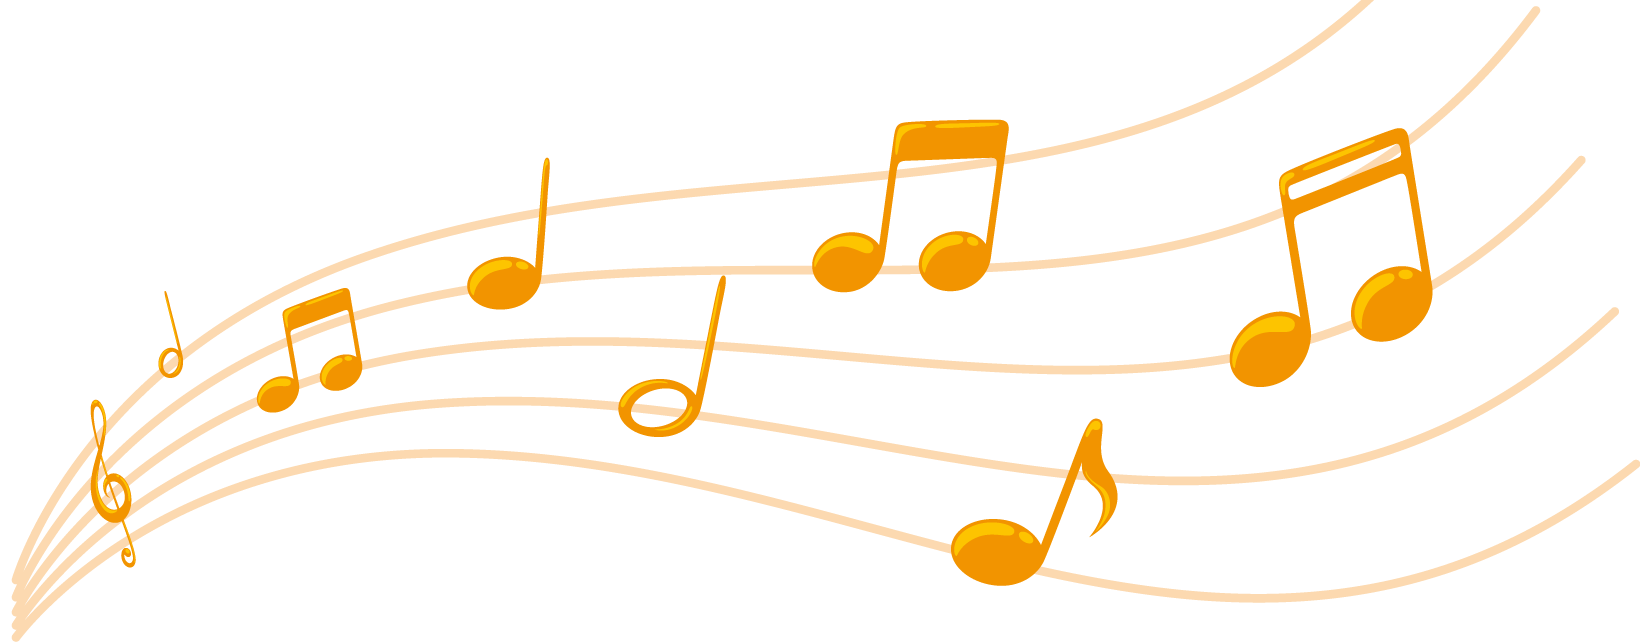 Music notes gold png. Colorful musical transparentpng